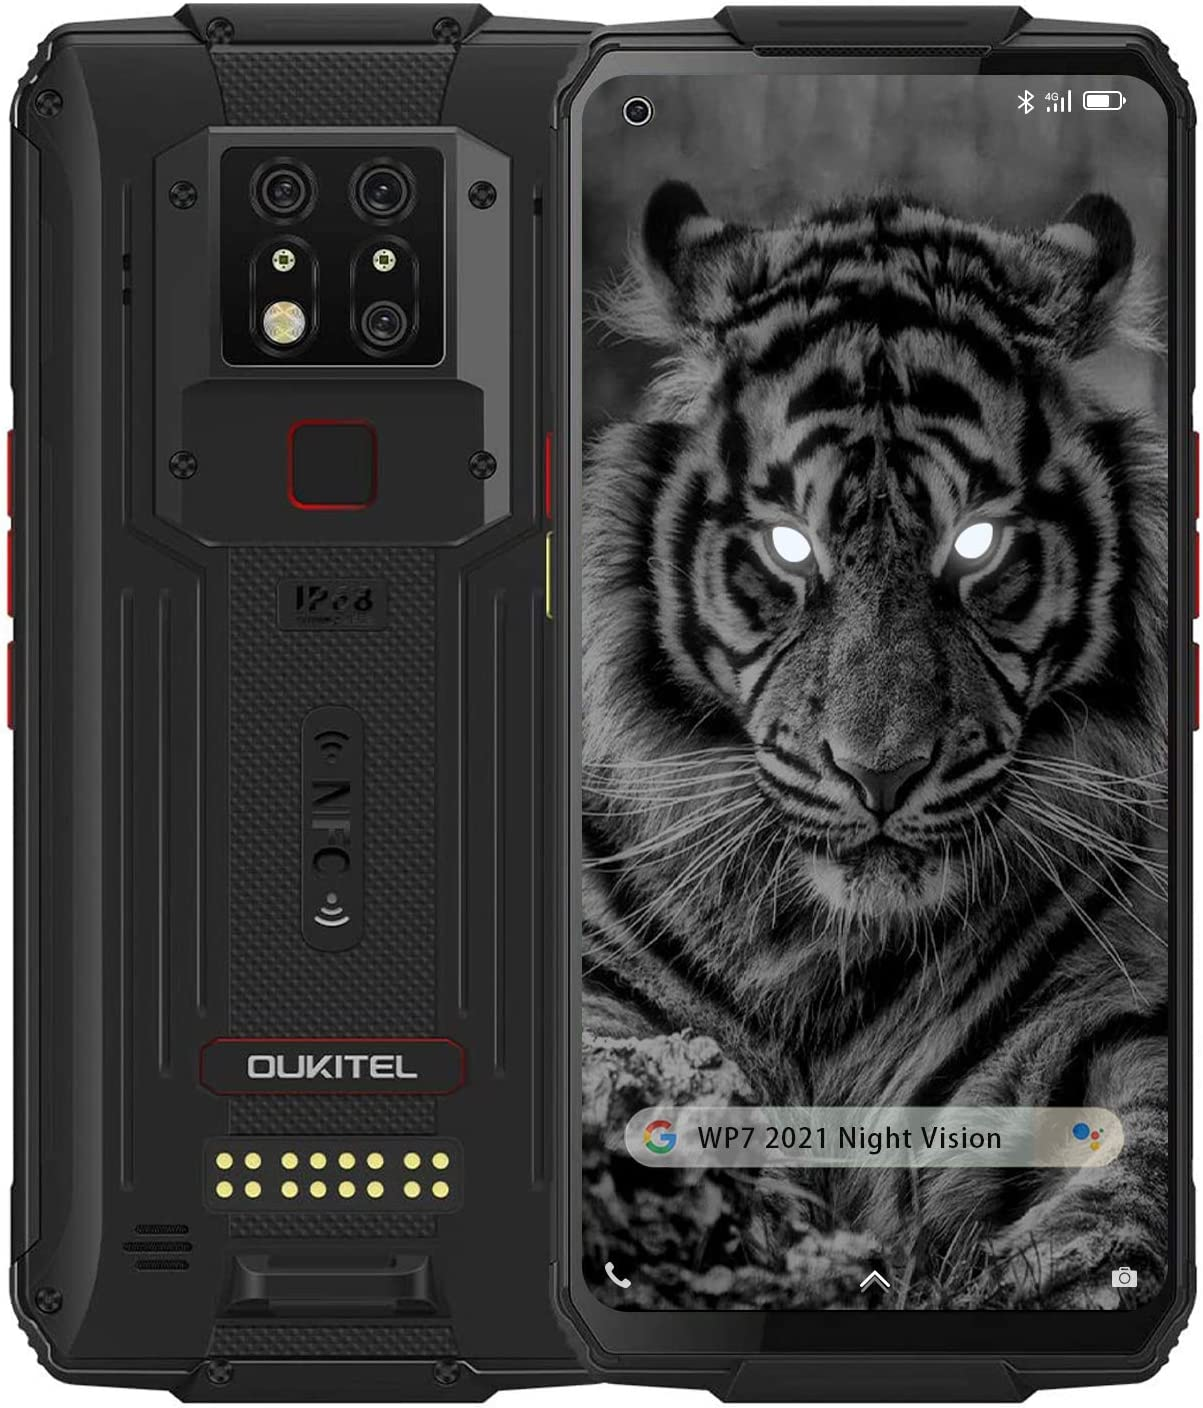 WP7 Rugged Smartphone, 2021 Night Vision Camera 6GB + 128GB Helio P90 Waterproof Unlocked Android 10 Cell Phone 6.53'' FHD+ Global 4G LTE Dual SIM, IP68 Triple Cameras NFC AI Cellphone (6+128 Black)